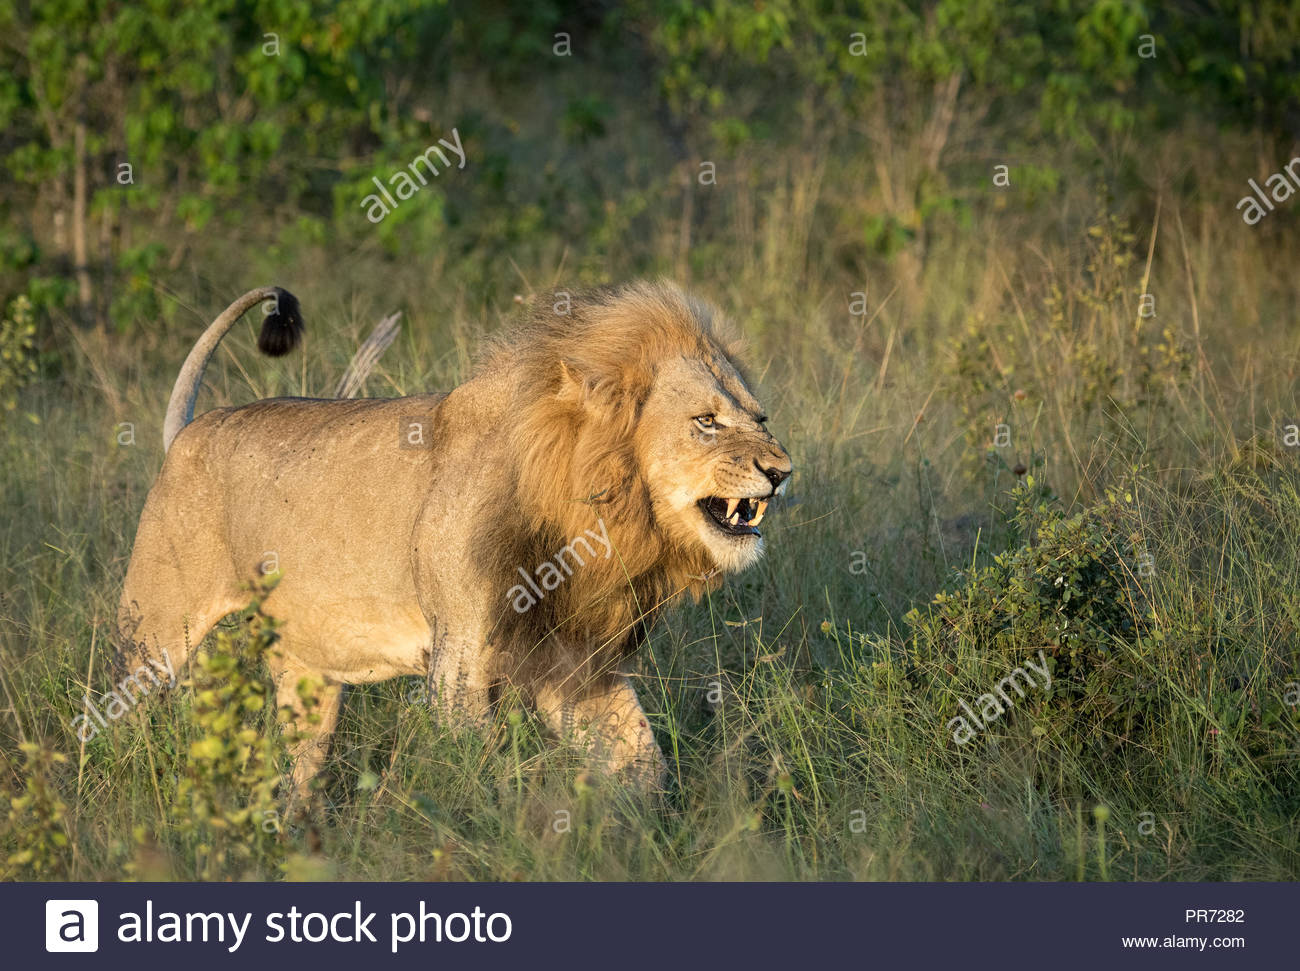 A snarling lion walks through the tall grasses on the Botswana savannah - Stock Image